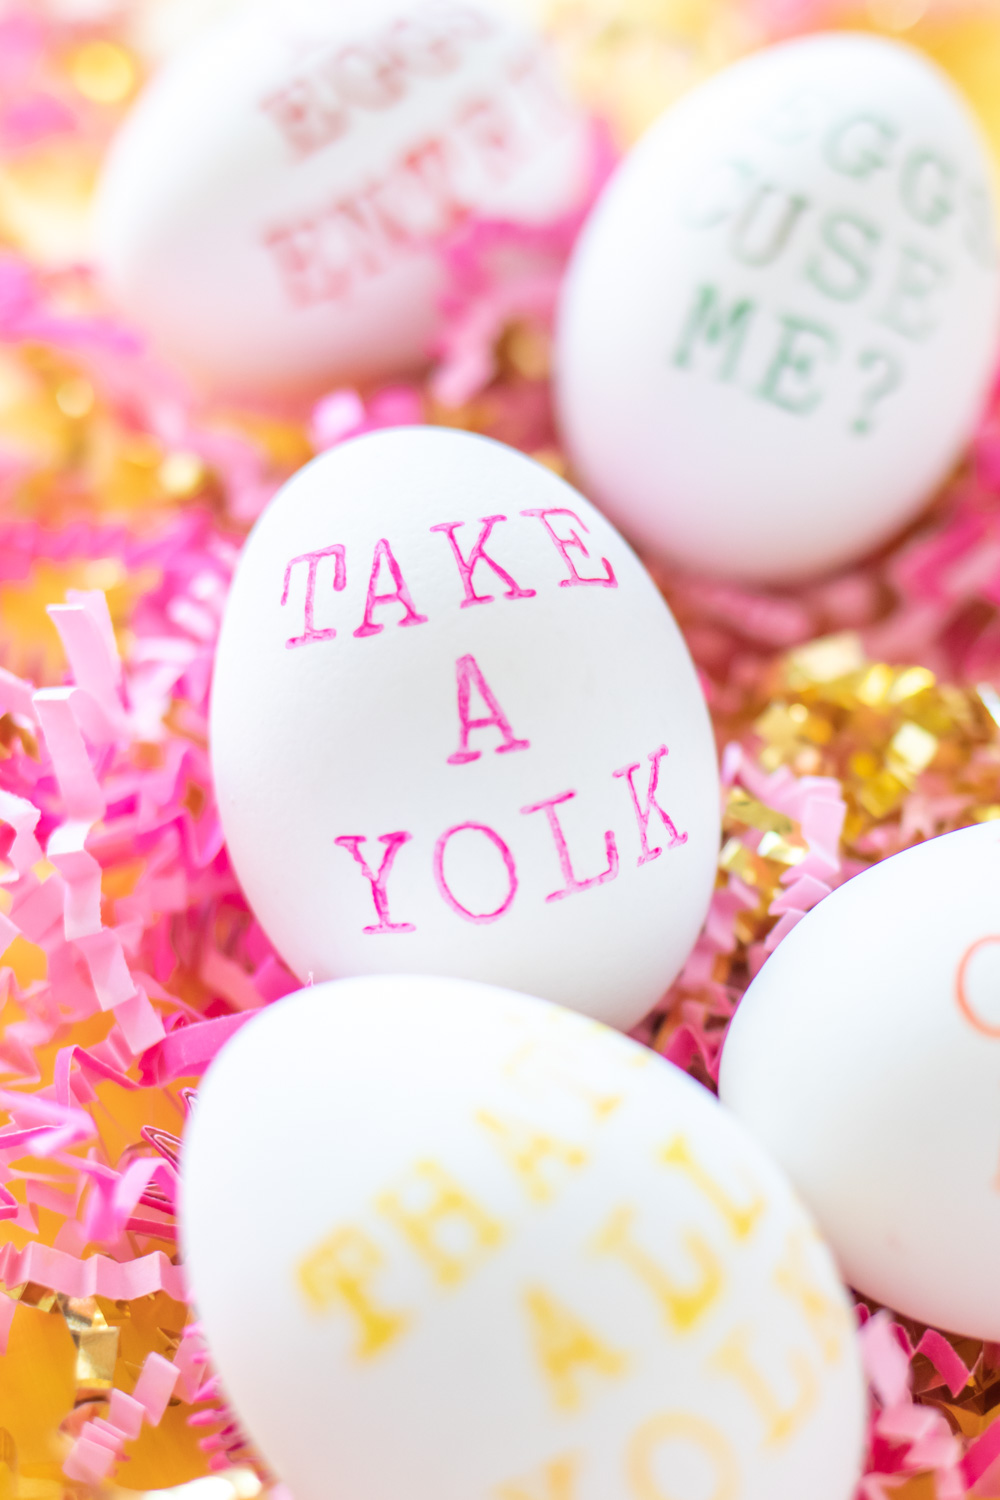 """punny easter egg that says """"take a yolk"""""""